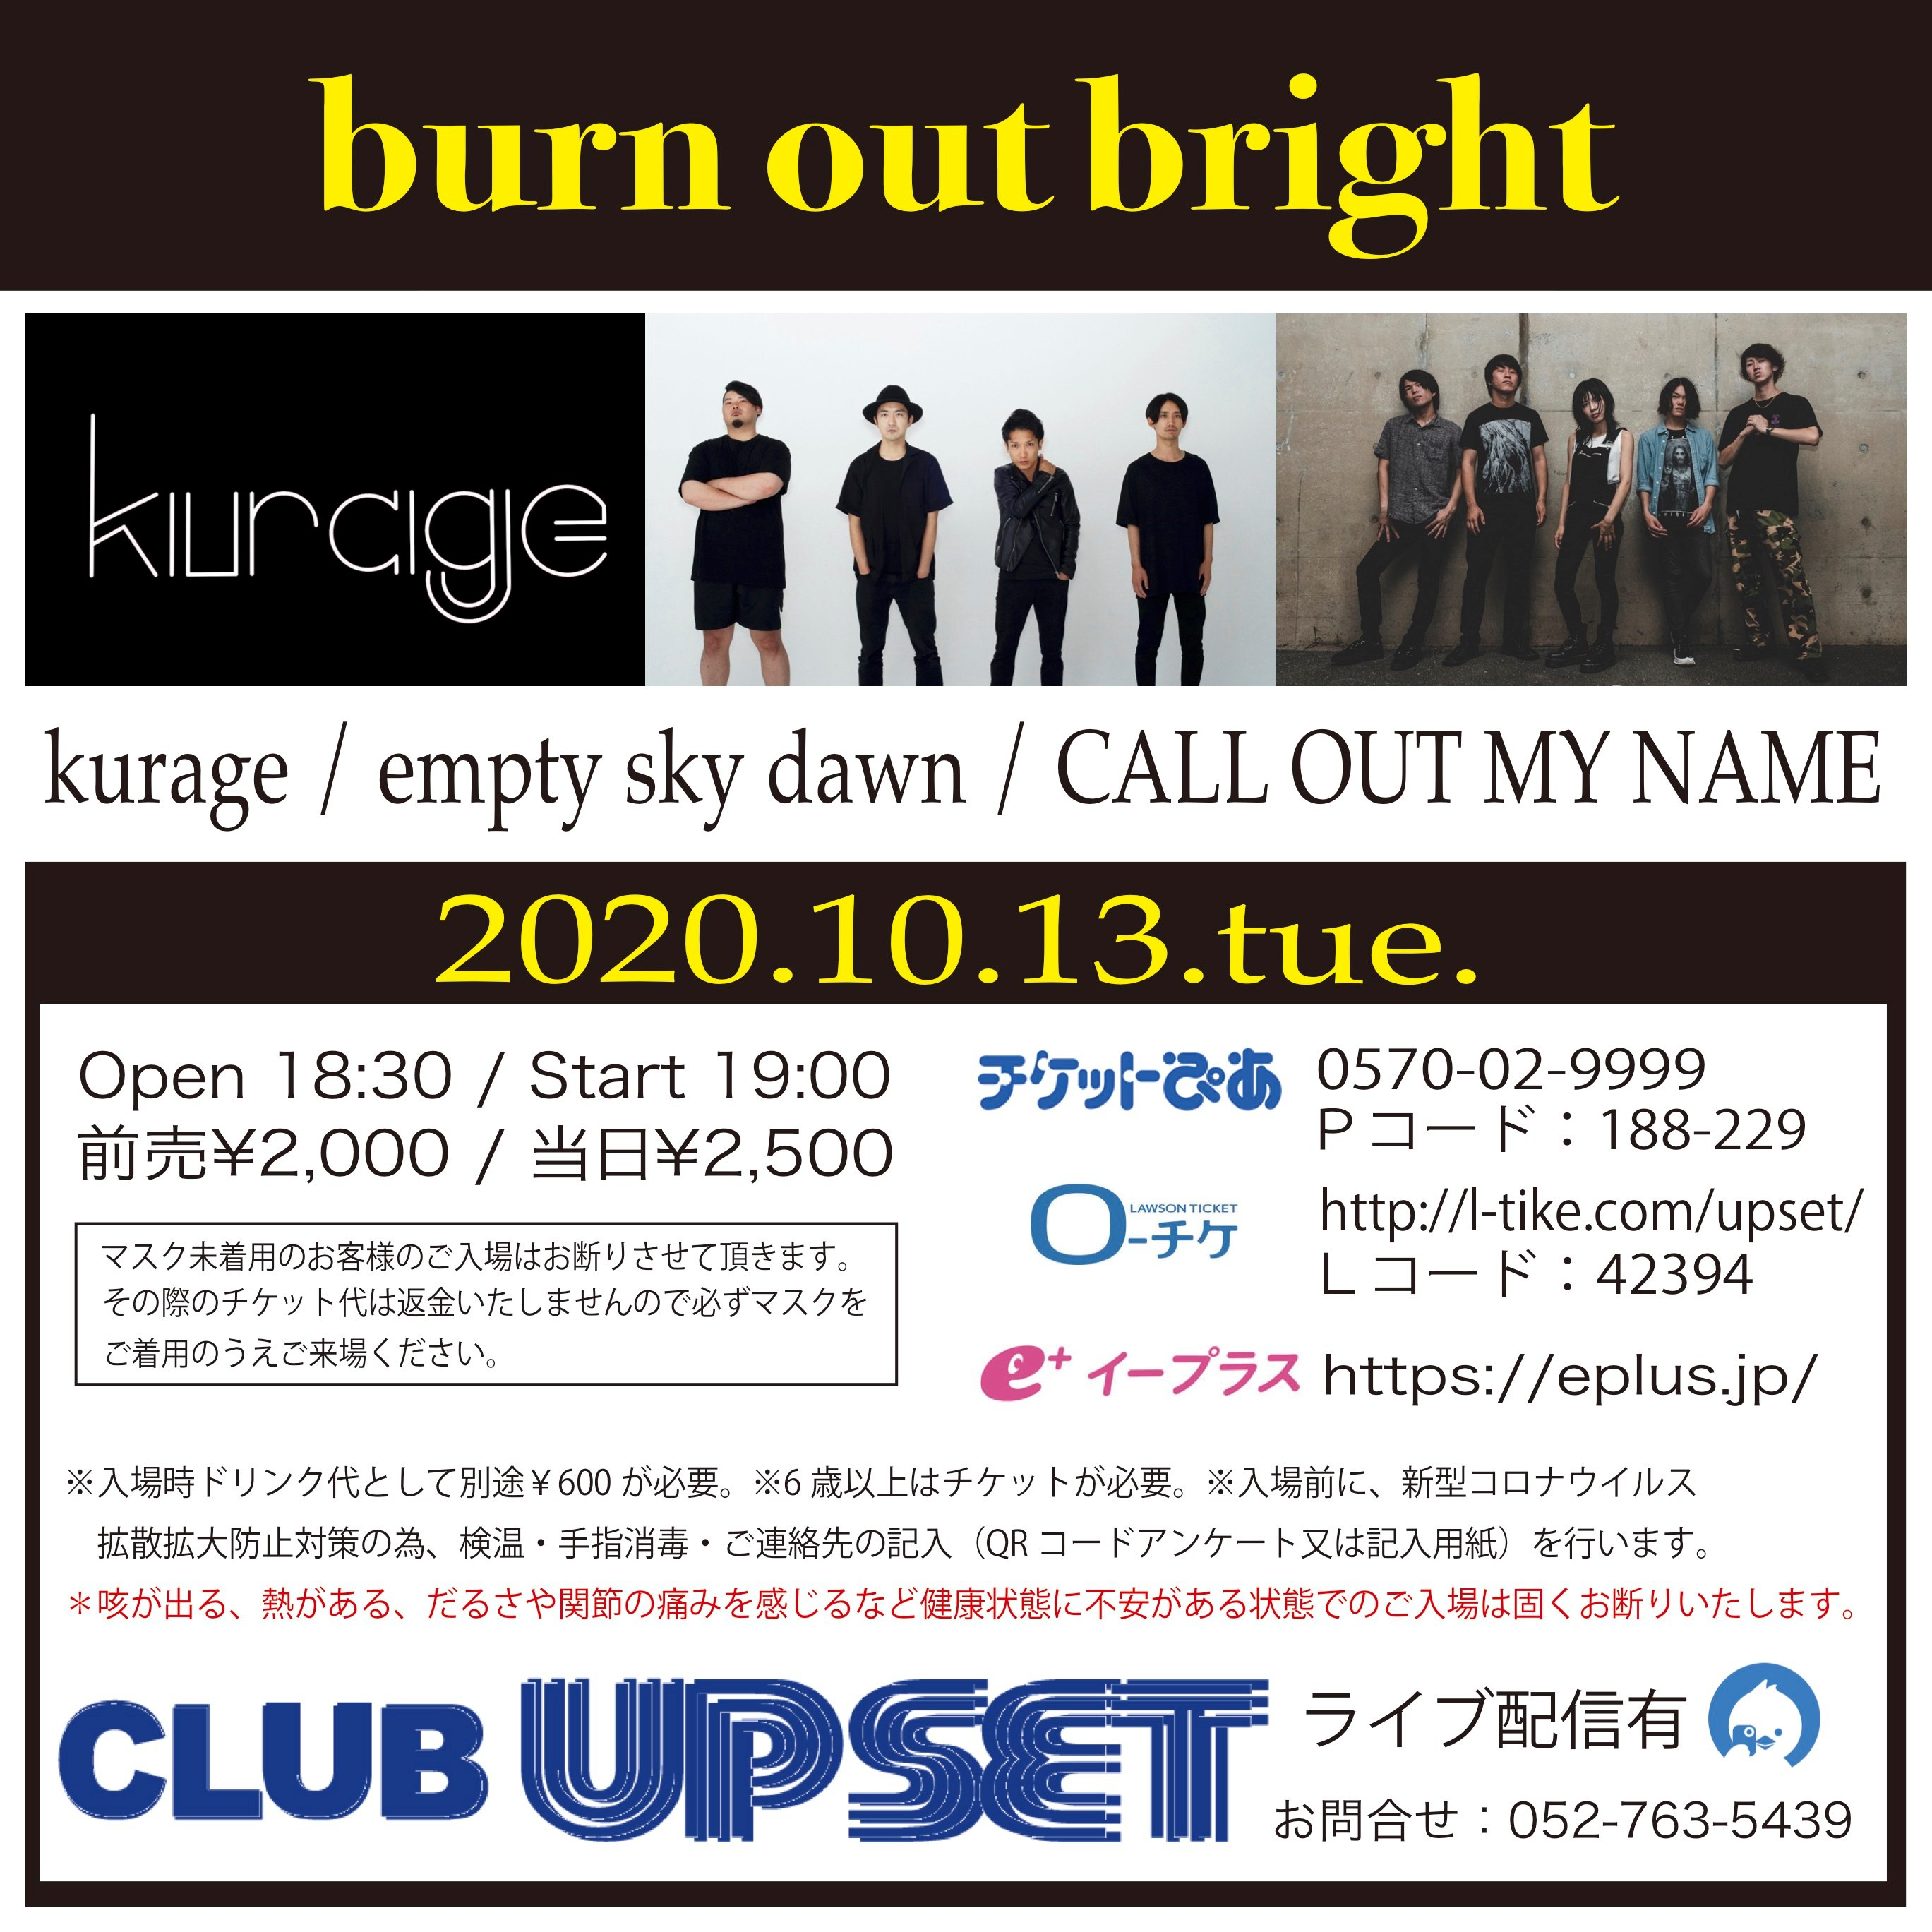 10/13 kurage / empty sky dawn 投げ銭